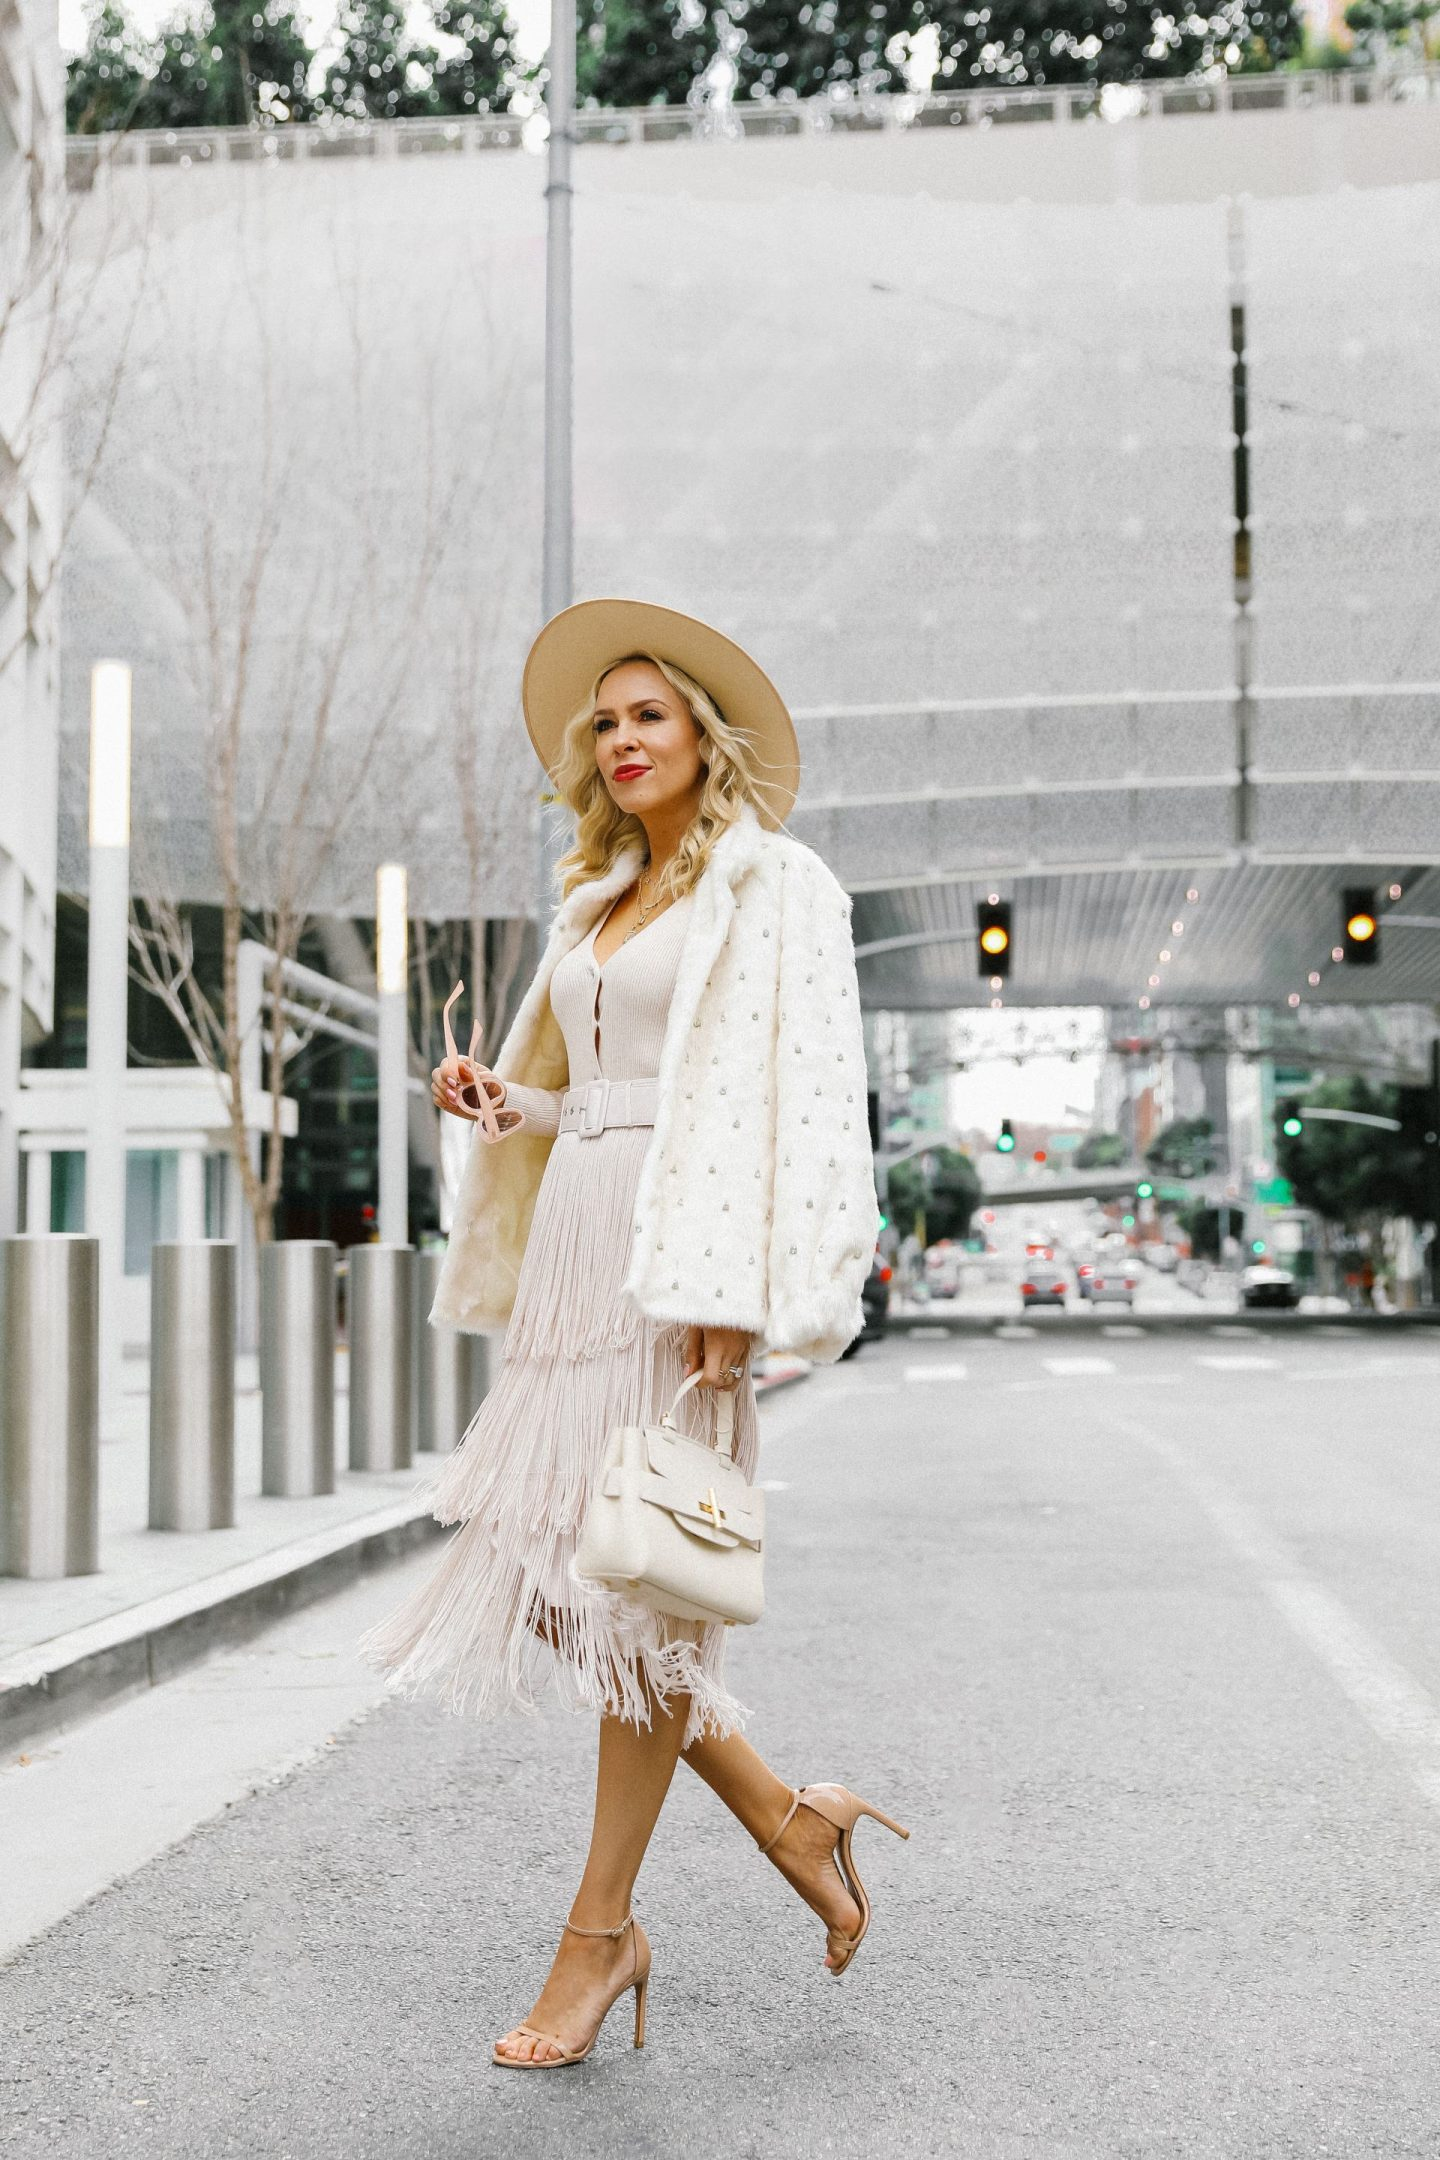 Revolve best neutral layers for spring, featured by top San Francisco blogger Lombard and Fifth.